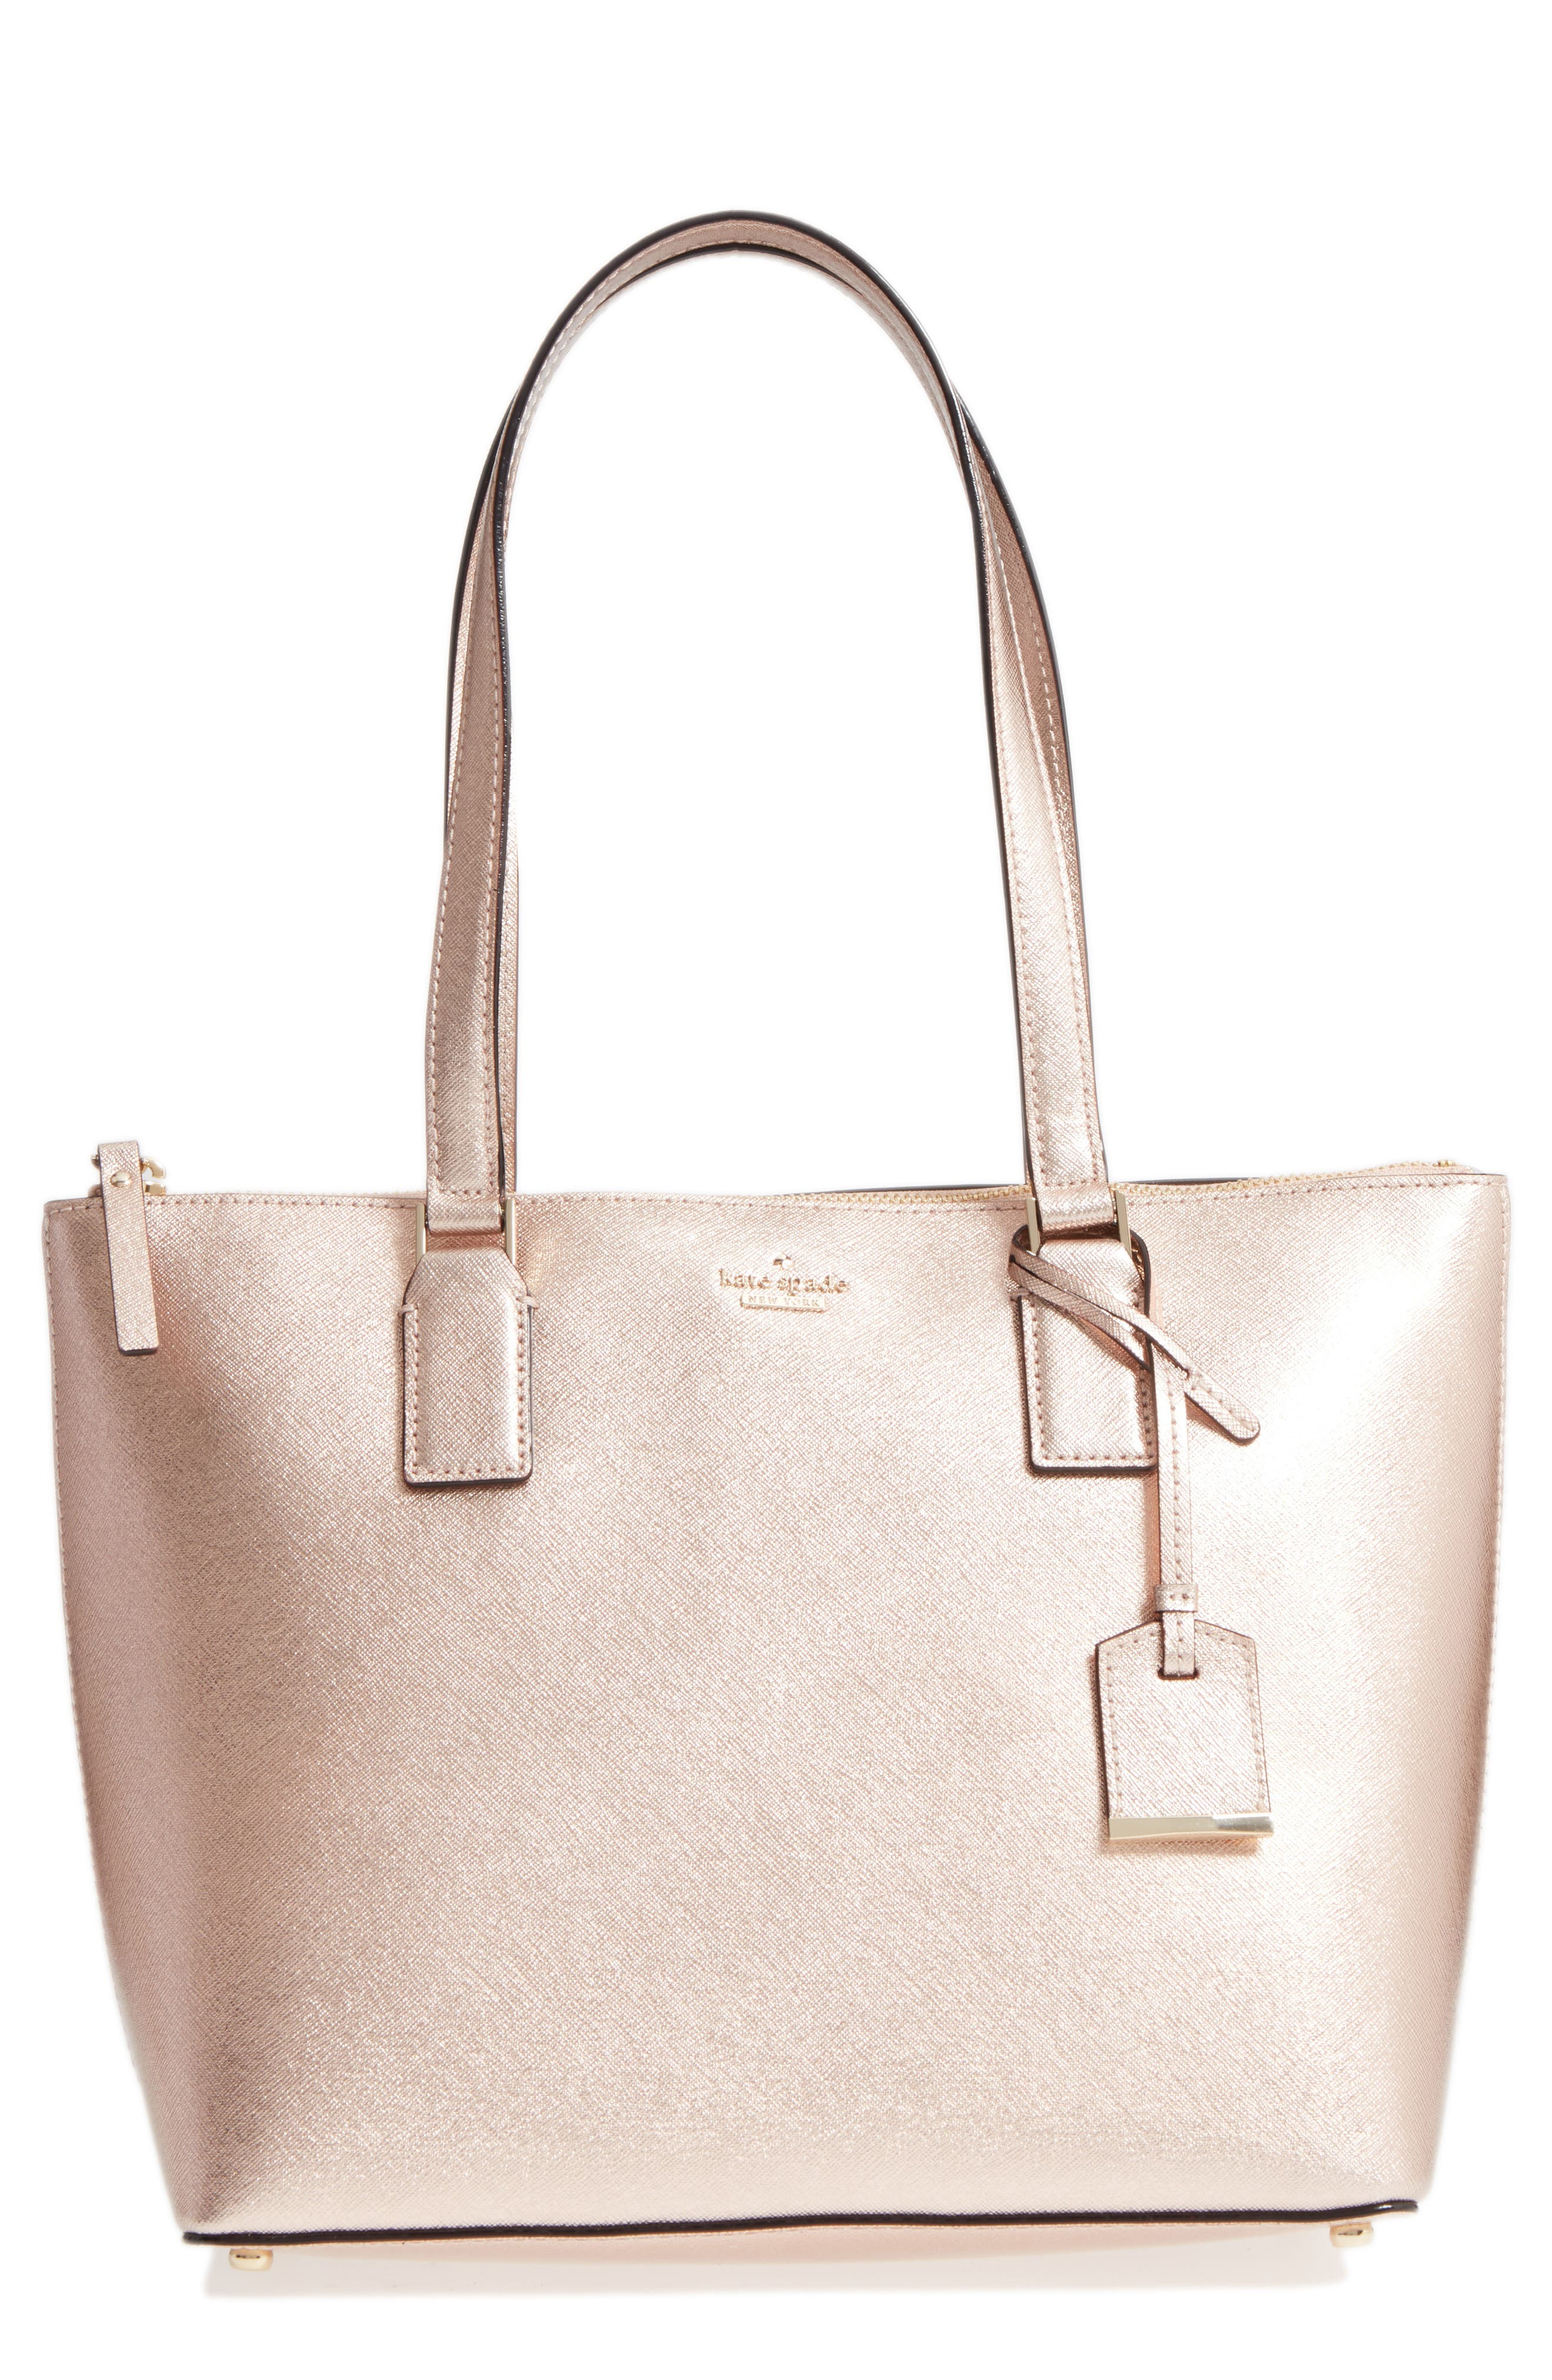 Alternate Image 1 Selected - kate spade new york cameron street - small lucie leather tote